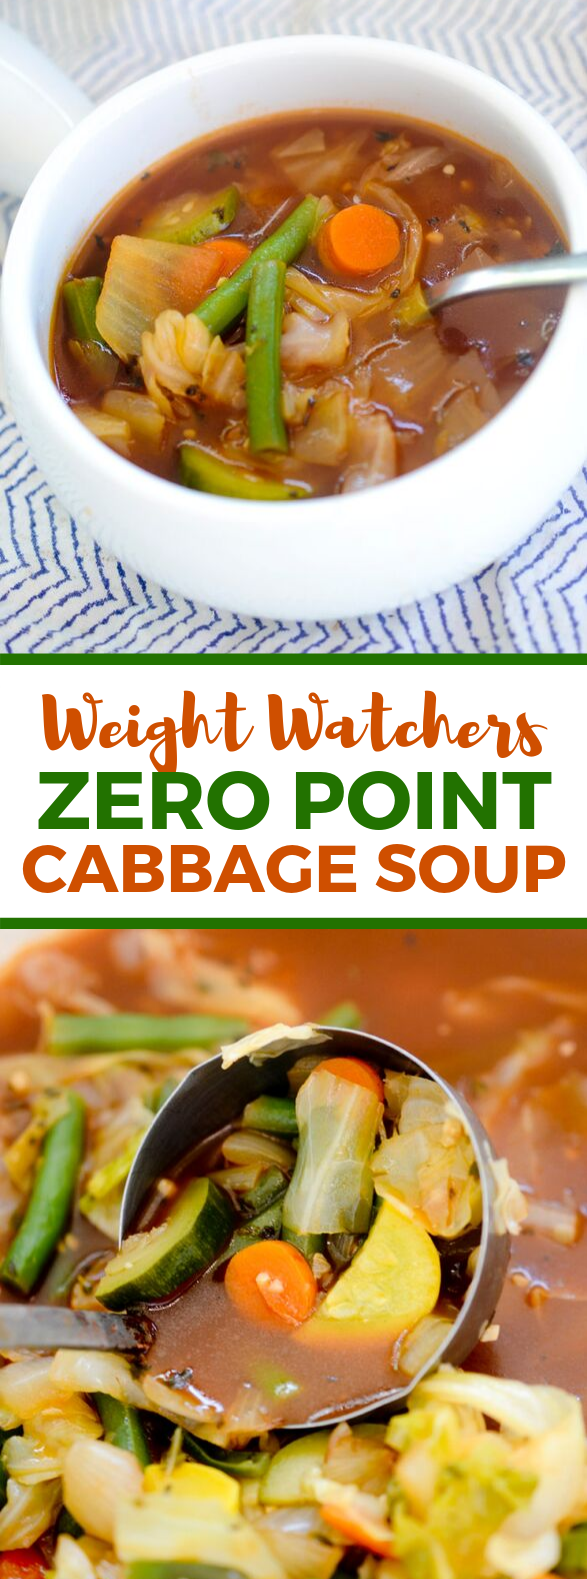 WEIGHT WATCHERS ZERO POINT CABBAGE SOUP #healthy #diet